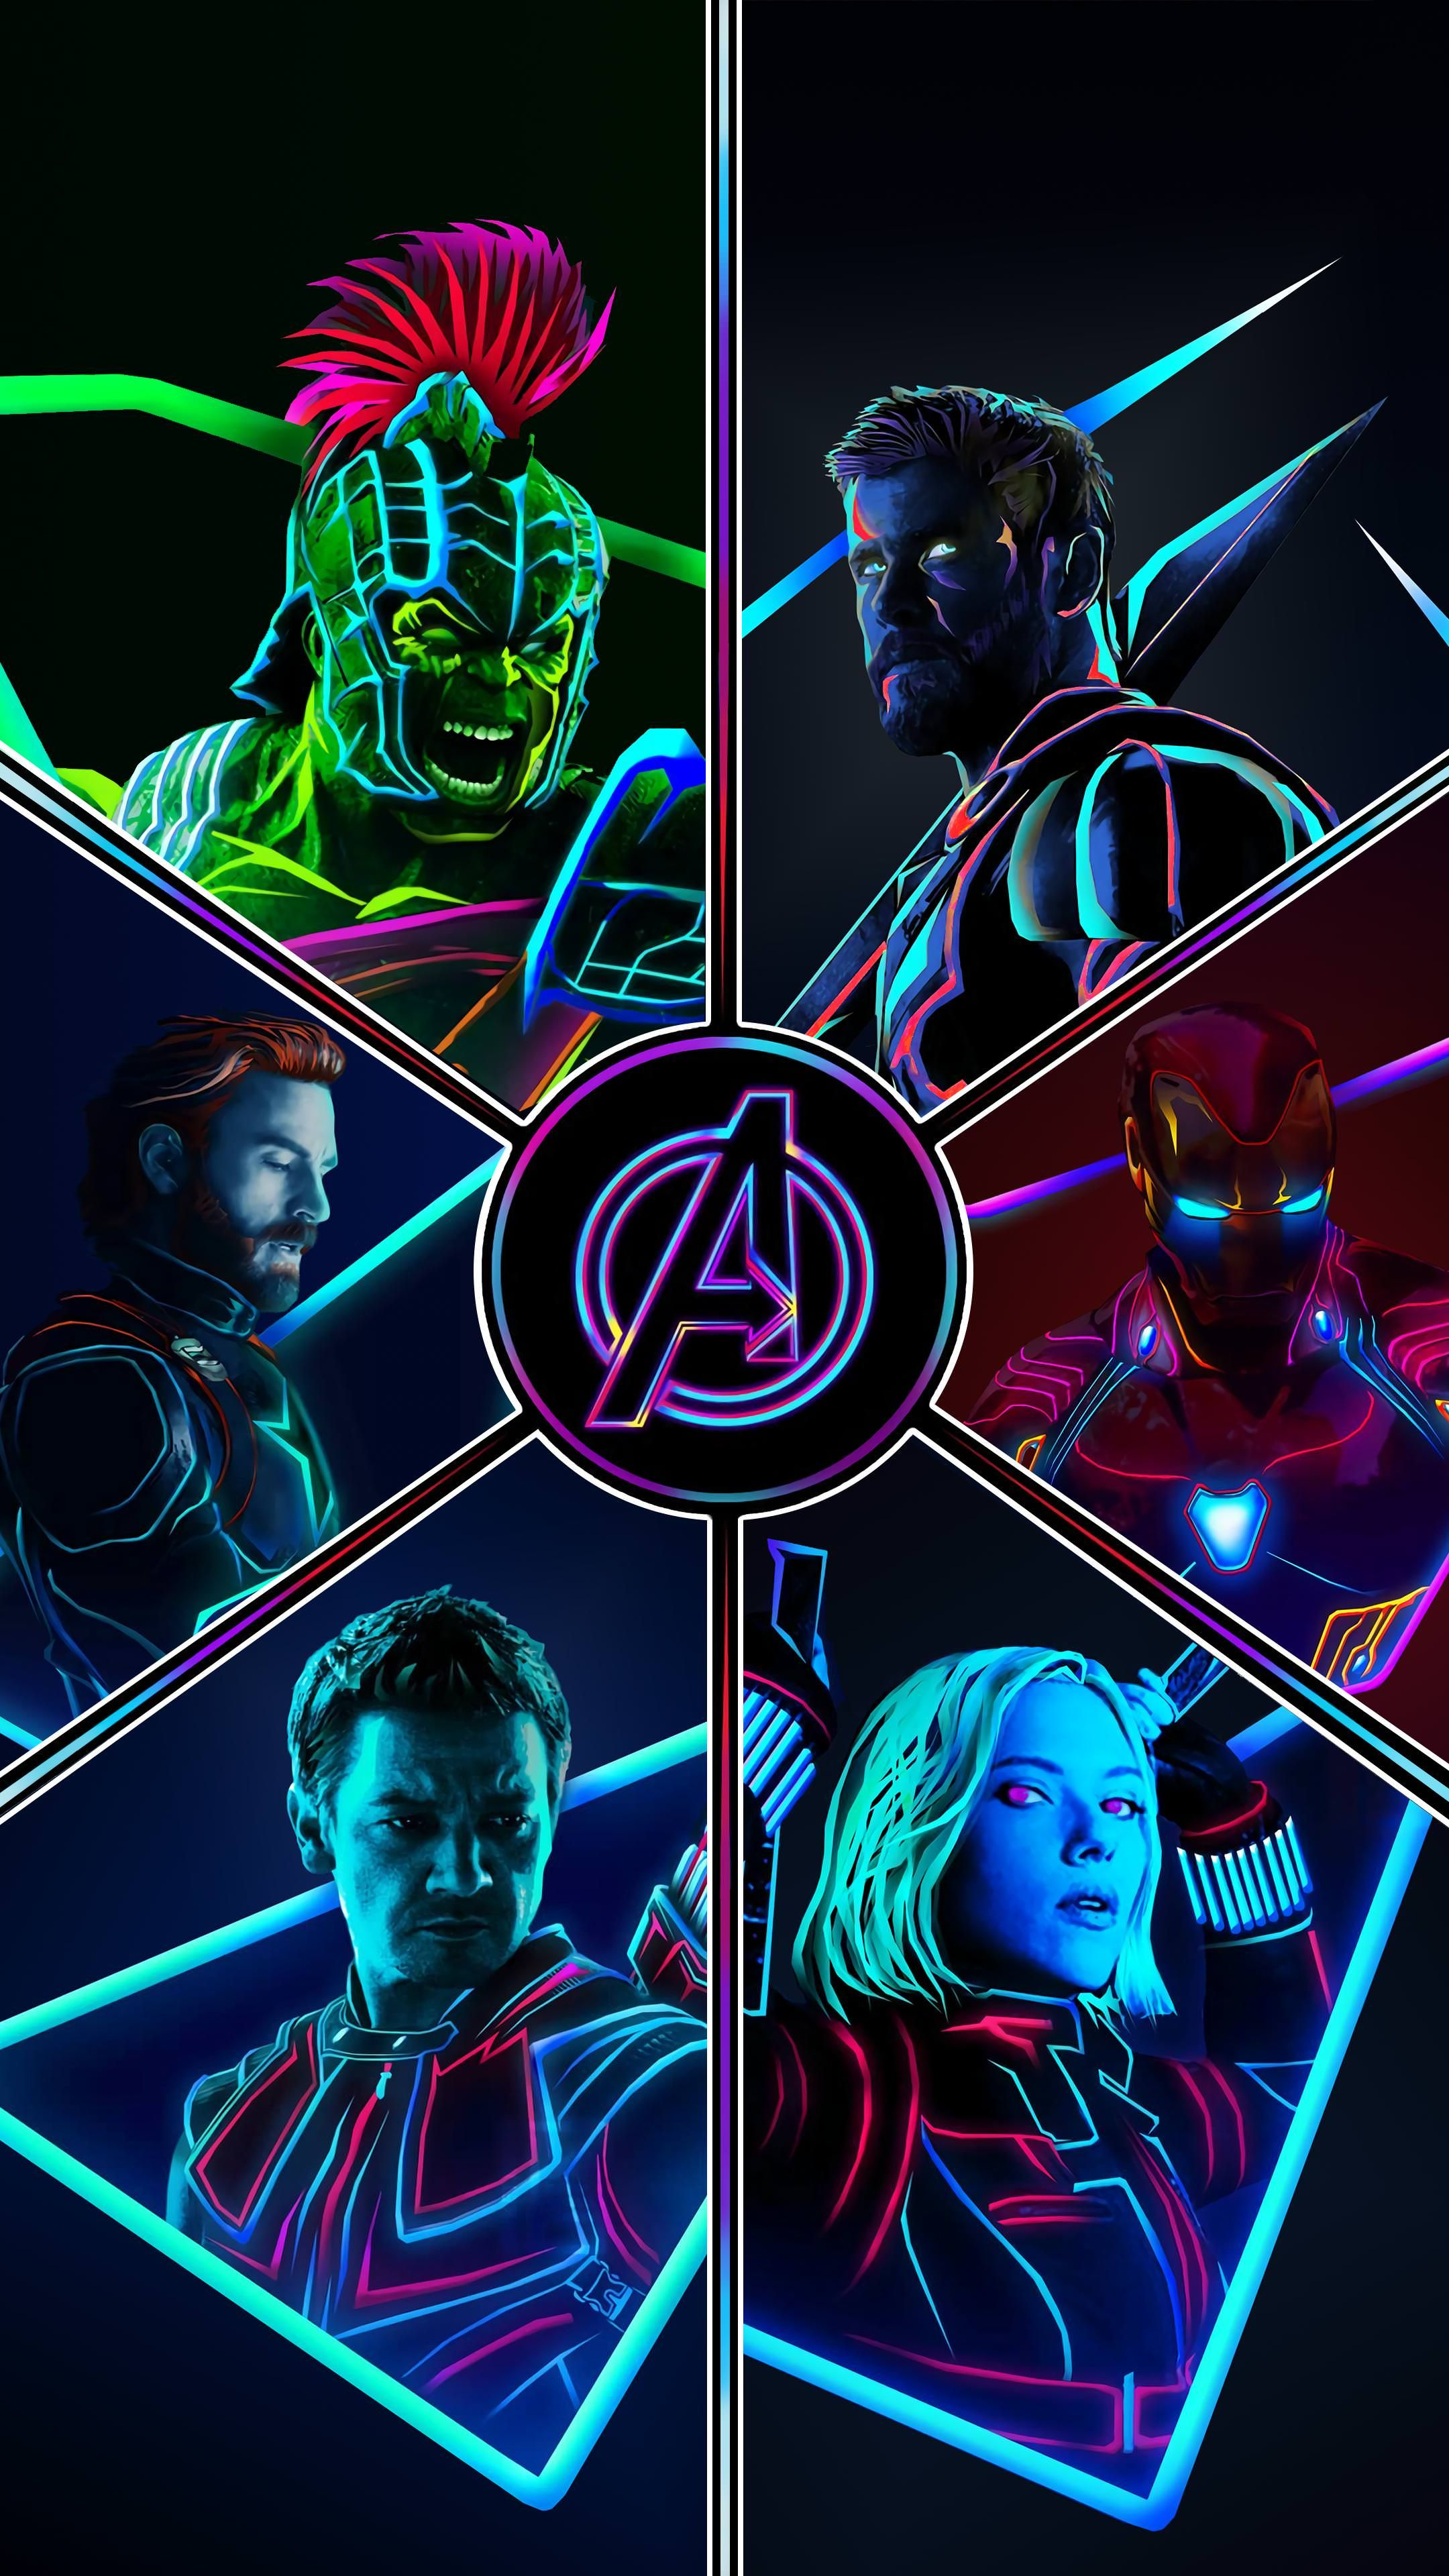 The Latest Aniketjatav Neon Post Of The Original 6 Sparked A Lot Of Requests For Wallpapers I Made Som Marvel Wallpaper Marvel Superheroes Avengers Wallpaper